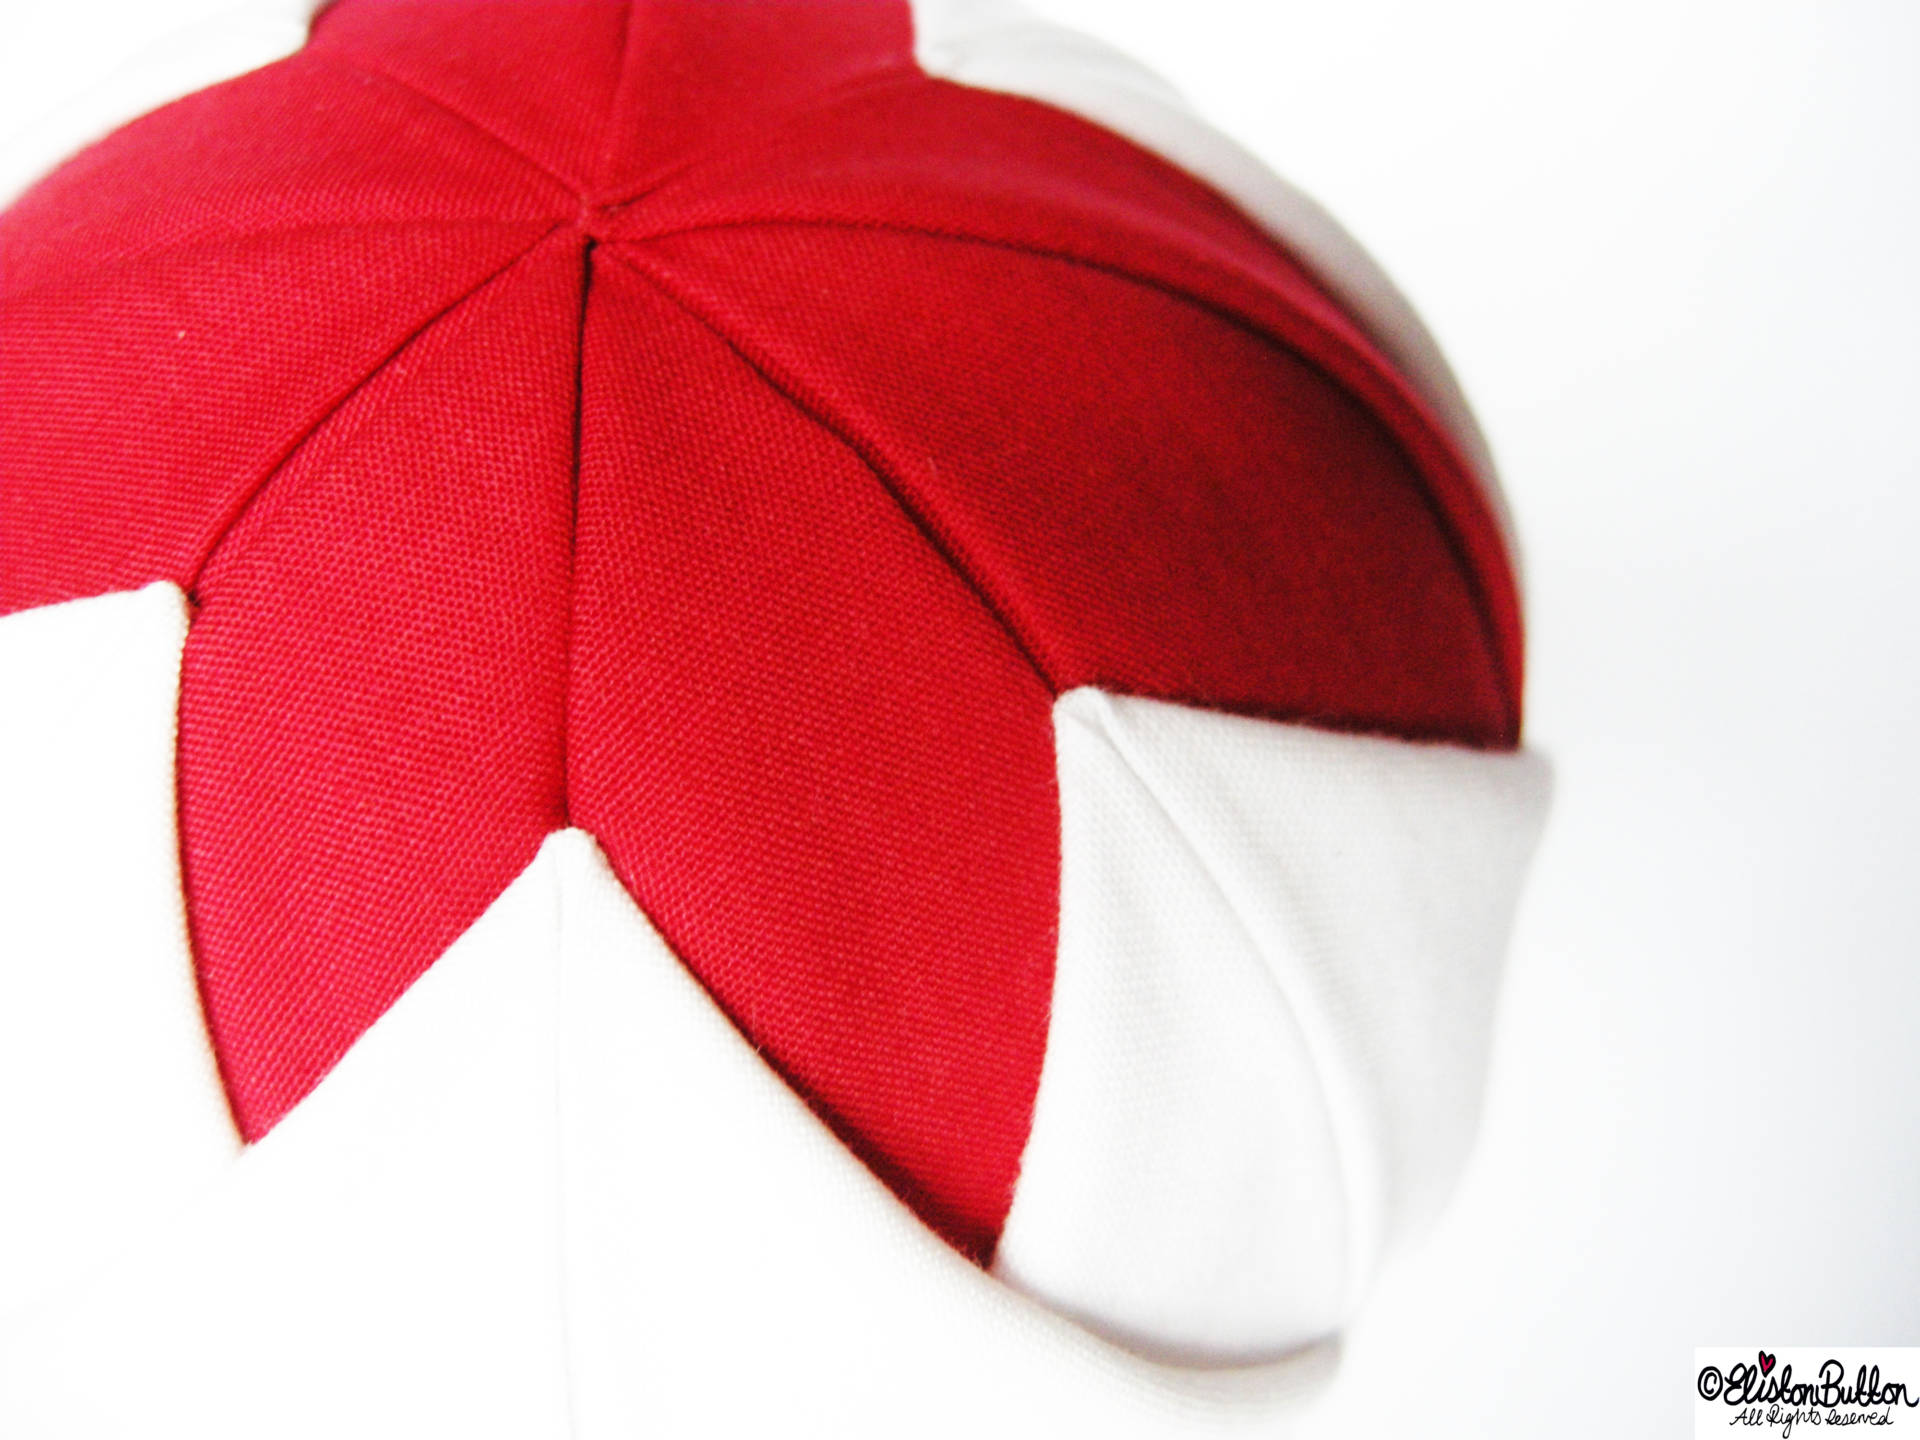 Close up of Red and White Quilted Fabric Layer Two - Quilted Christmas Baubles - A Tutorial at www.elistonbutton.com - Eliston Button - That Crafty Kid – Art, Design, Craft & Adventure.